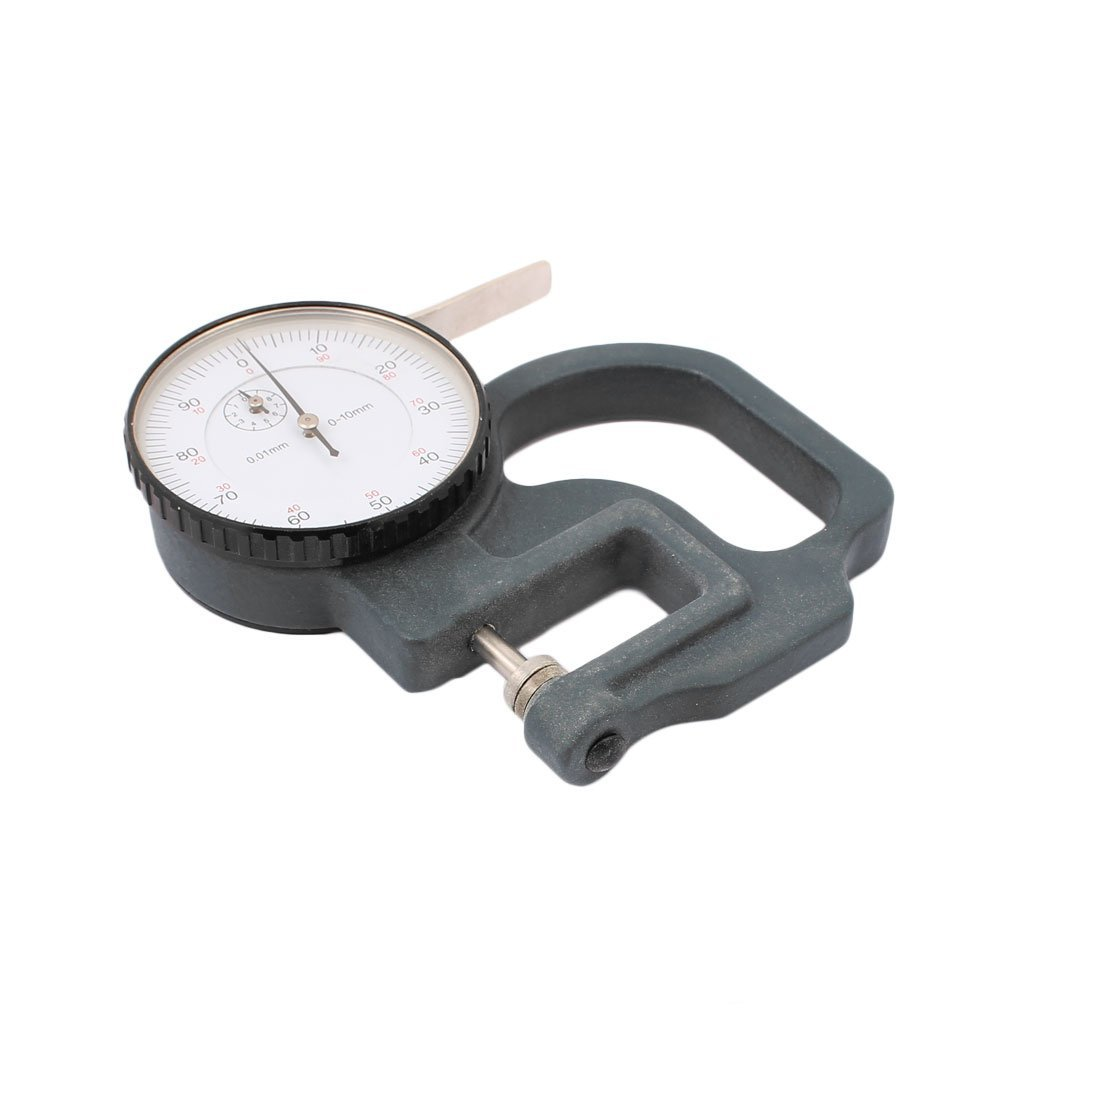 Utoolmart Thickness Gauge, 0-10mm x 0.1mm Precision Accuracy Round Dial Indicator Thickness Gauge 1pcs